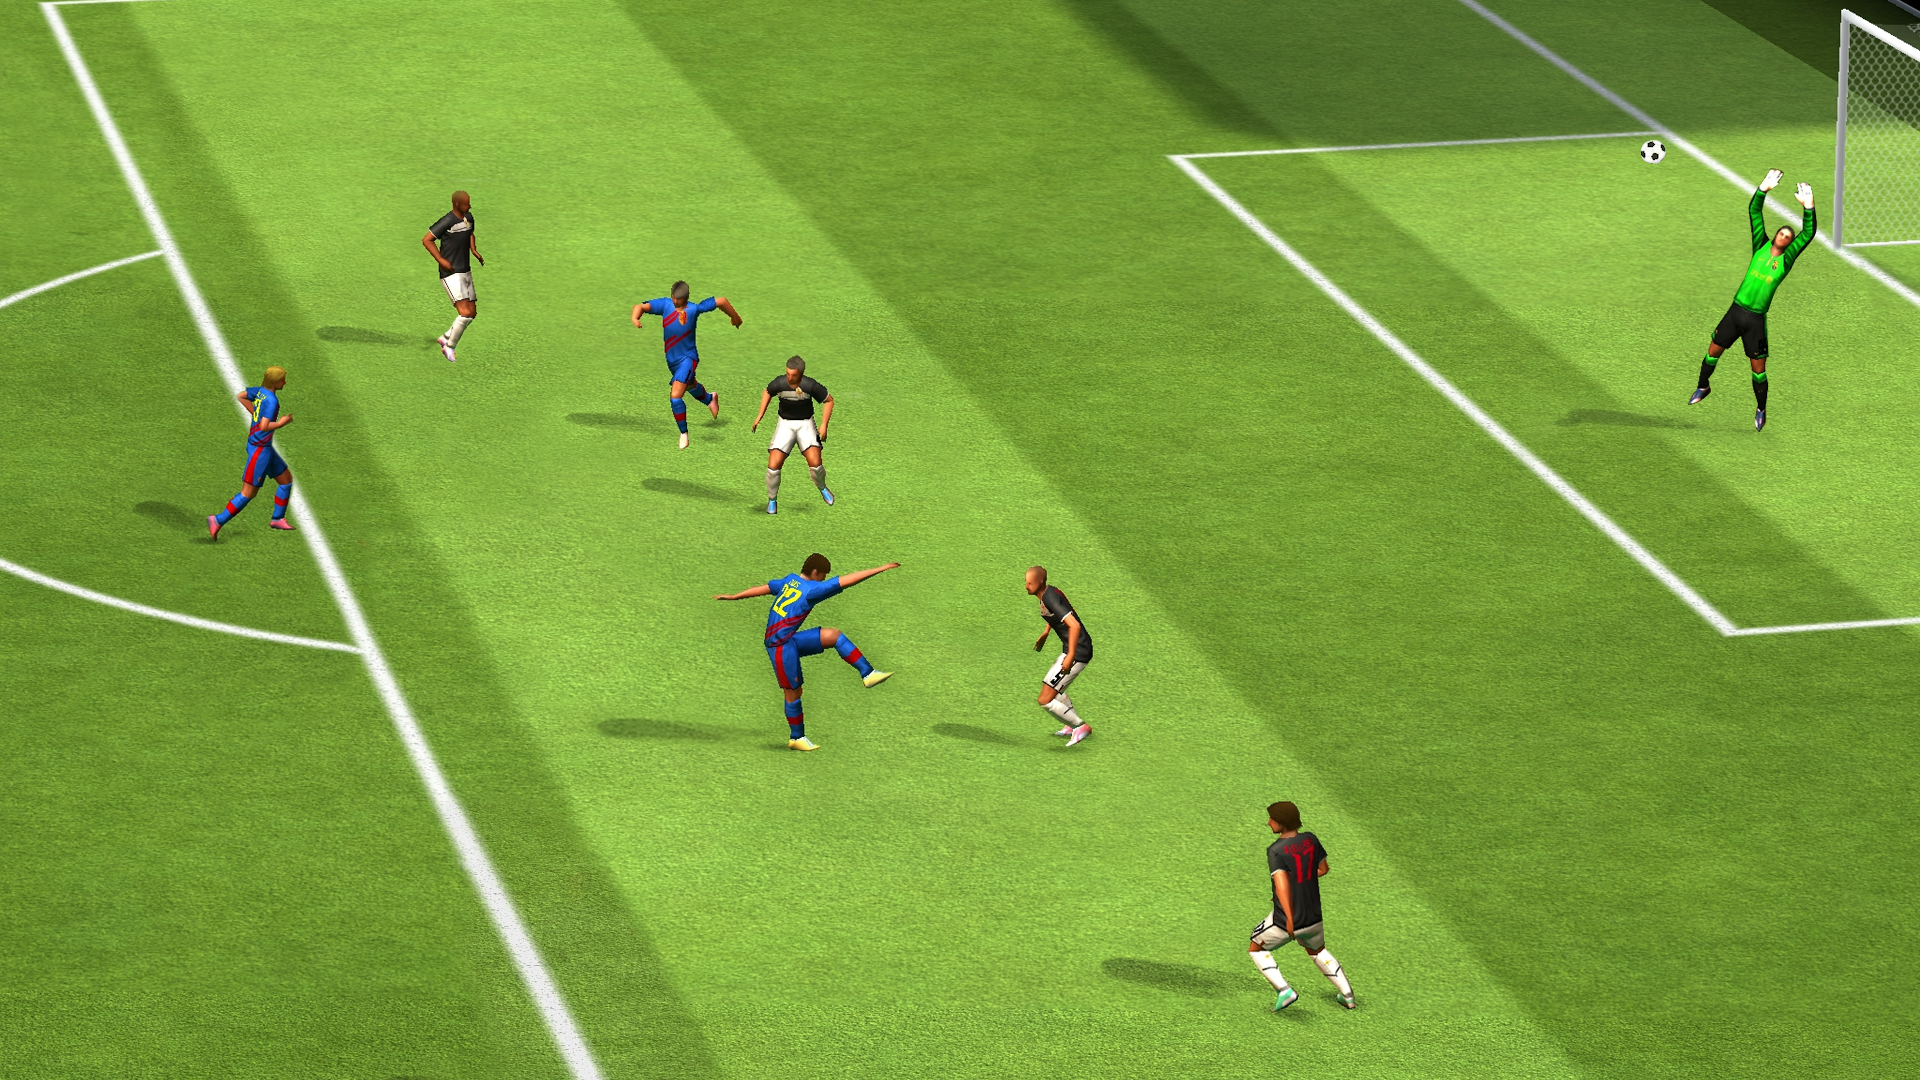 Real Soccer 2013 screenshot #6